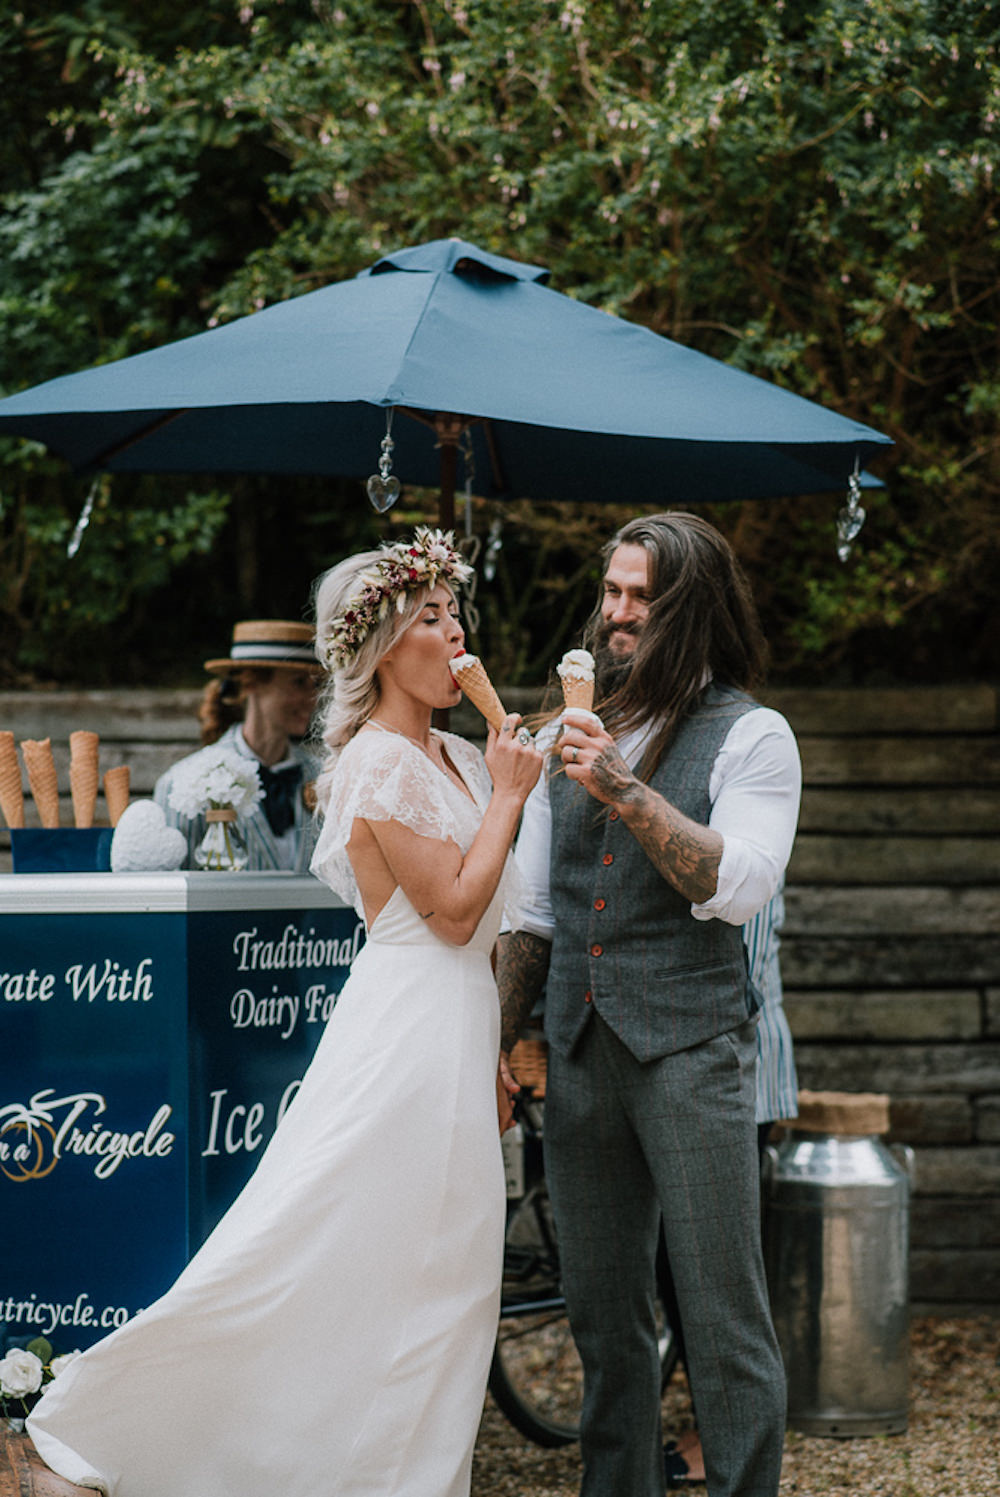 Ice Cream Trike Stand Cart Unconventional Wedding Ideas Pierra G Photography